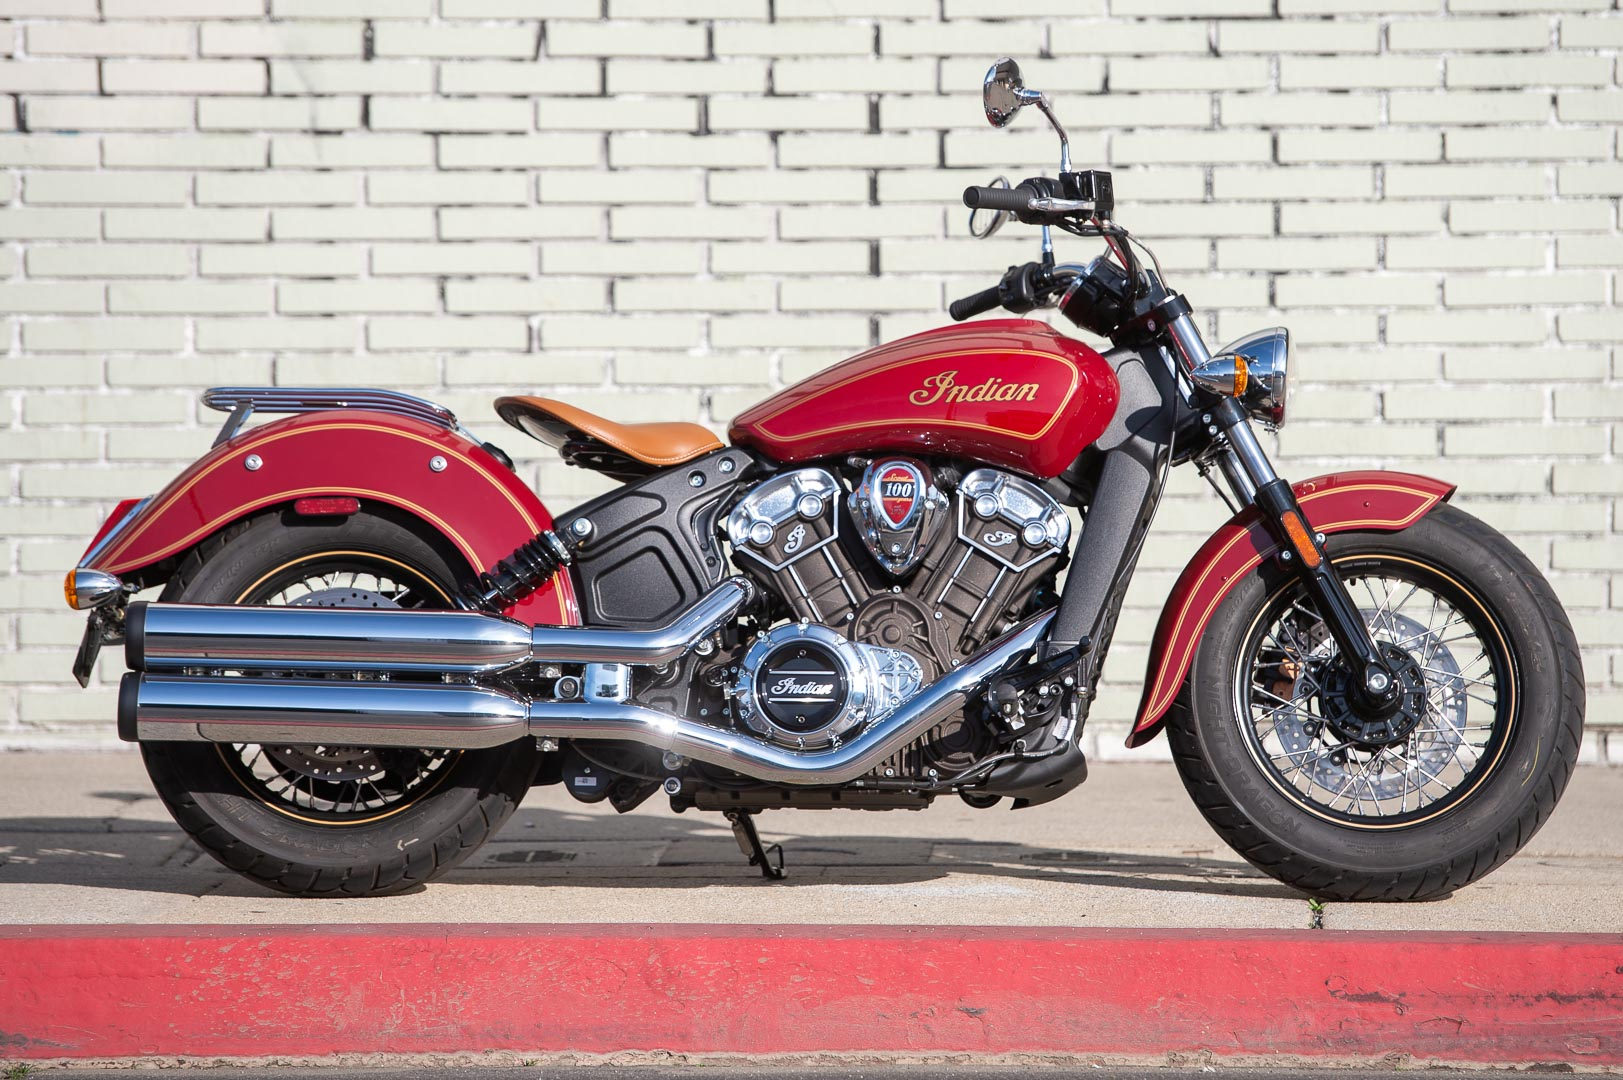 2020 Indian Scout 100th Anniversary Review - Price